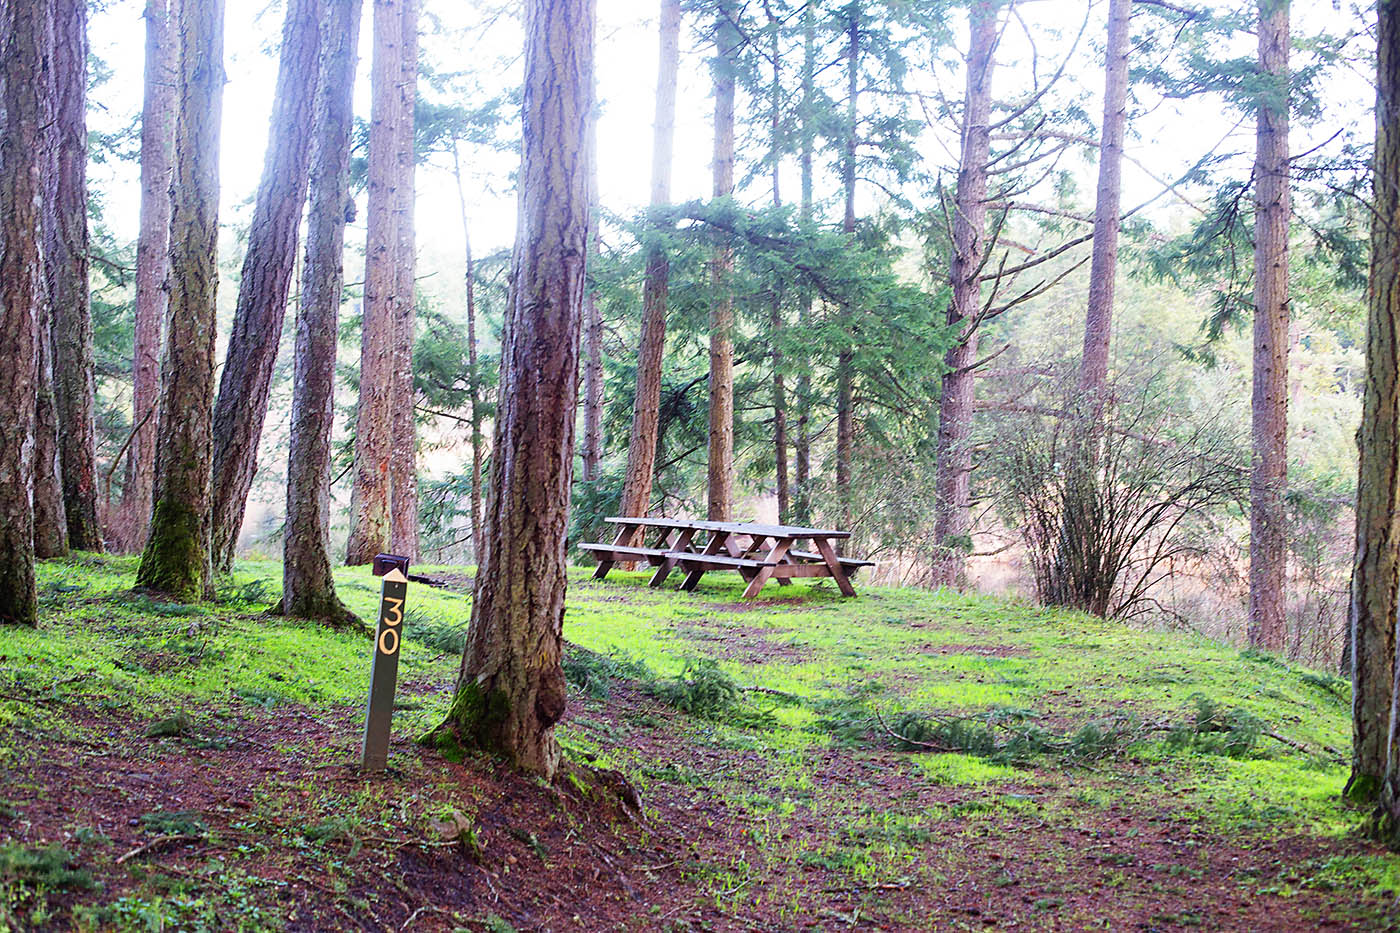 Lakedale campsite on San Juan Island near Washington